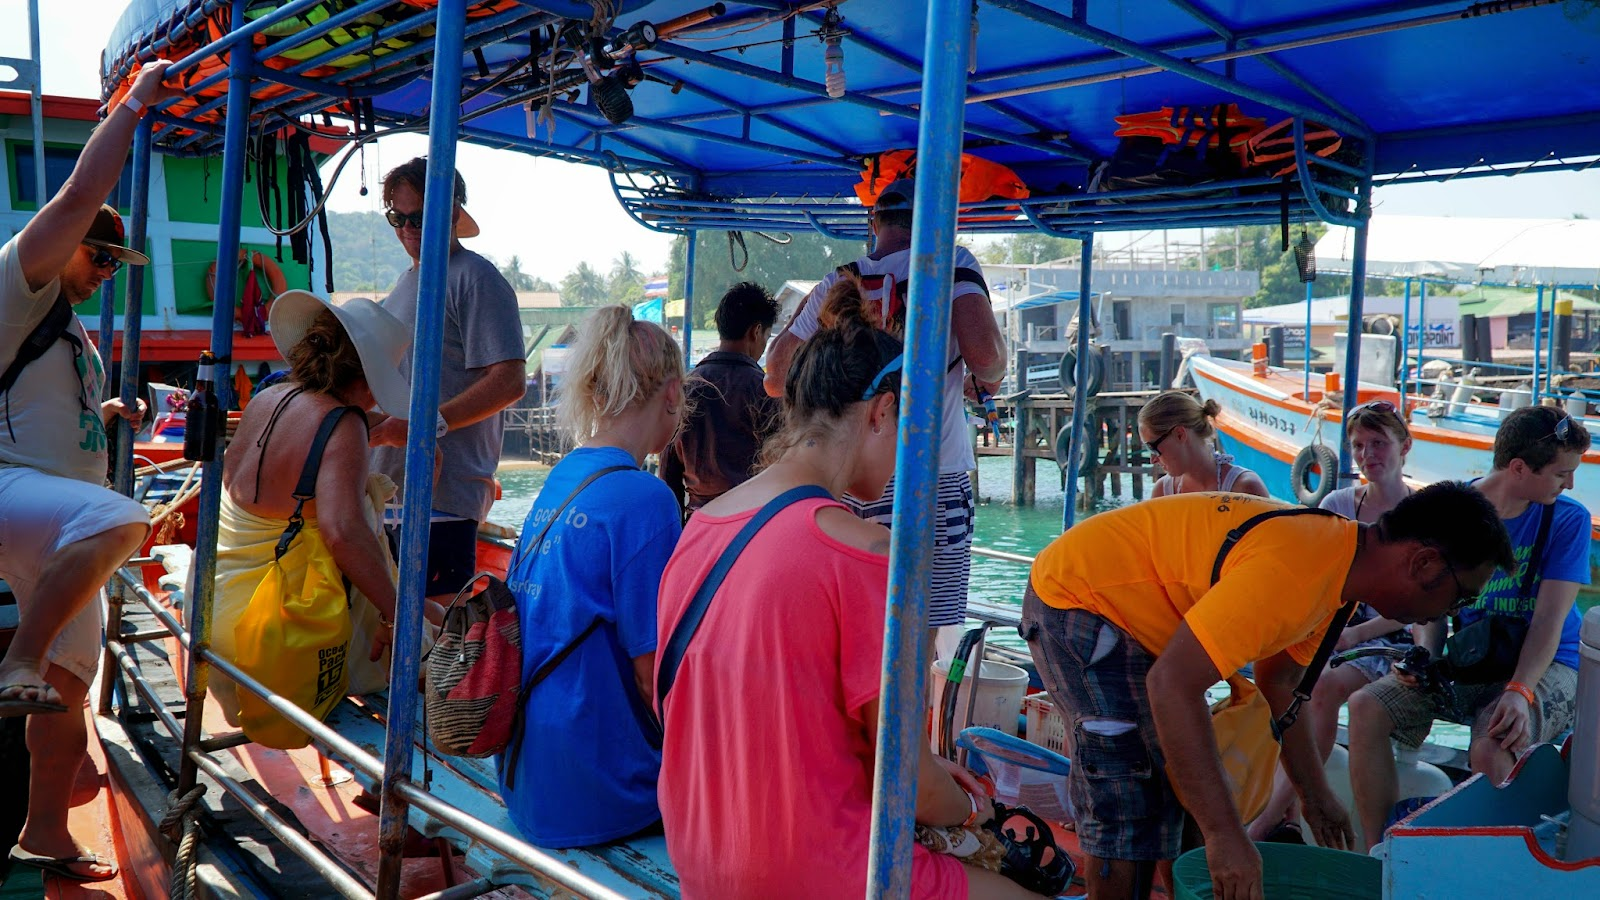 Getting ready to depart for our snorkeling trip around Koh Tao